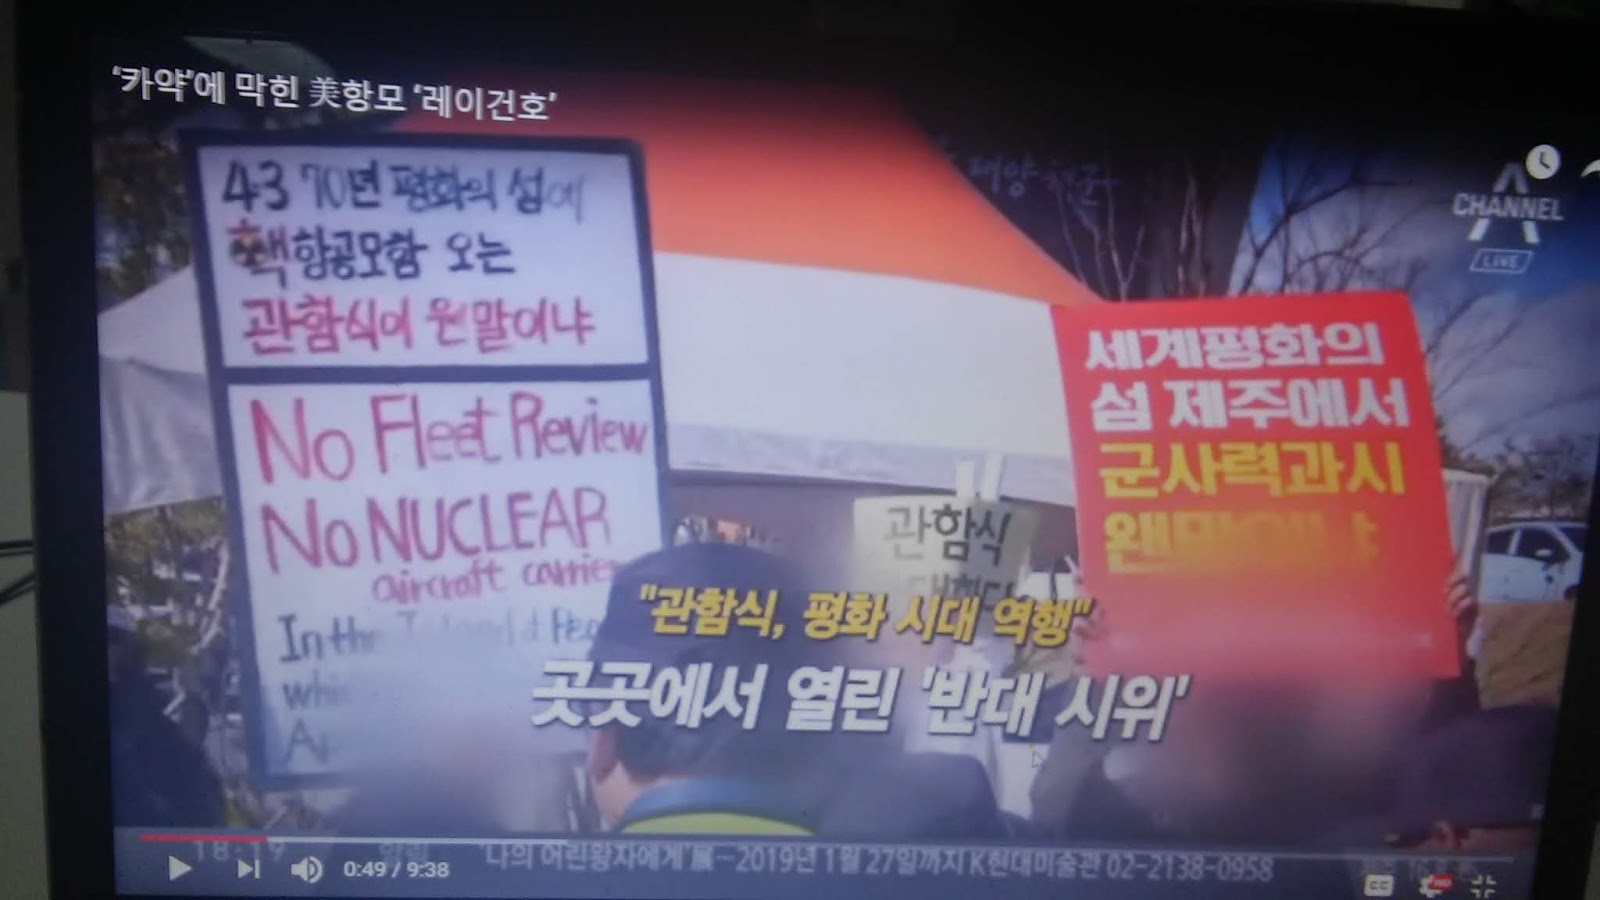 source channel a news top ten 10 11 kayaks block us aircraft carrier ronald reagan one sign in the photo says why we ask is a nuclear aircraft carrier